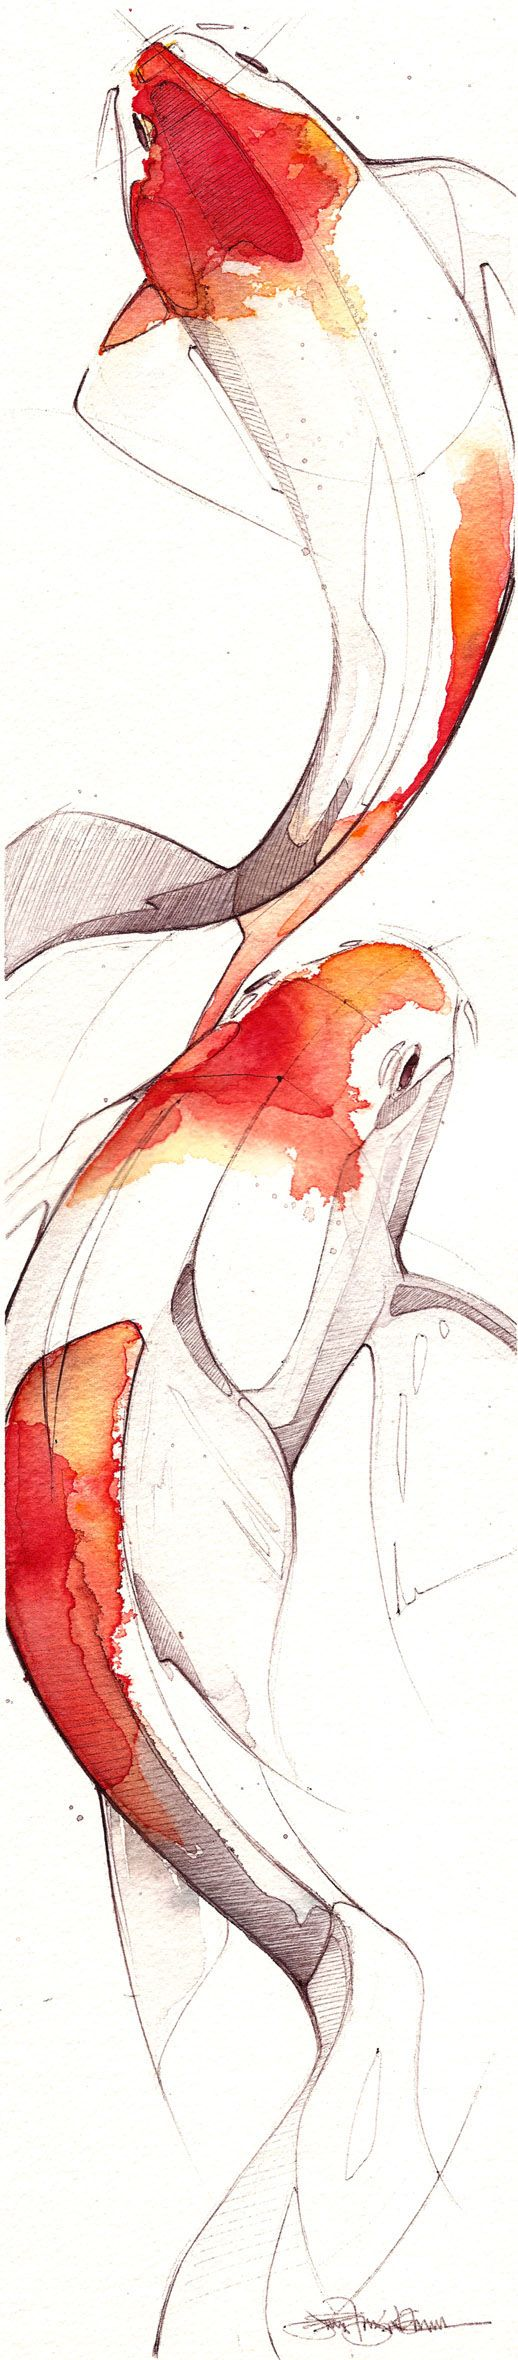 Koi loosely depicted with watercolor.